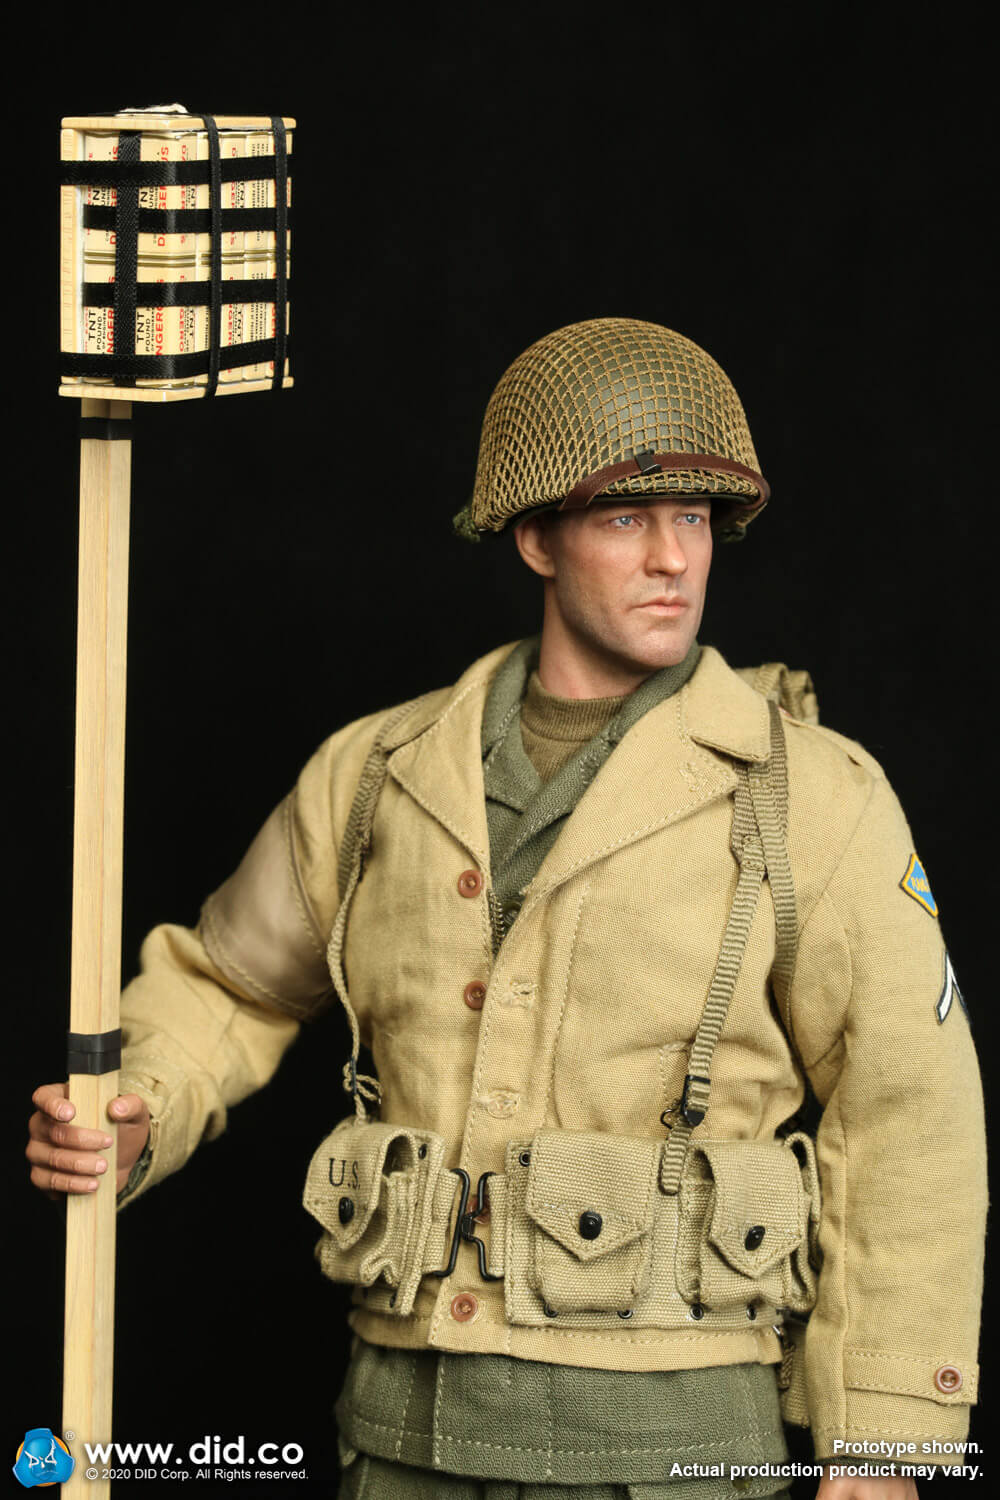 did - NEW PRODUCT: DiD: A80141 WWII US 2nd Ranger Battalion Private First Class Reiben 1/6 scale figure Us-2nd13